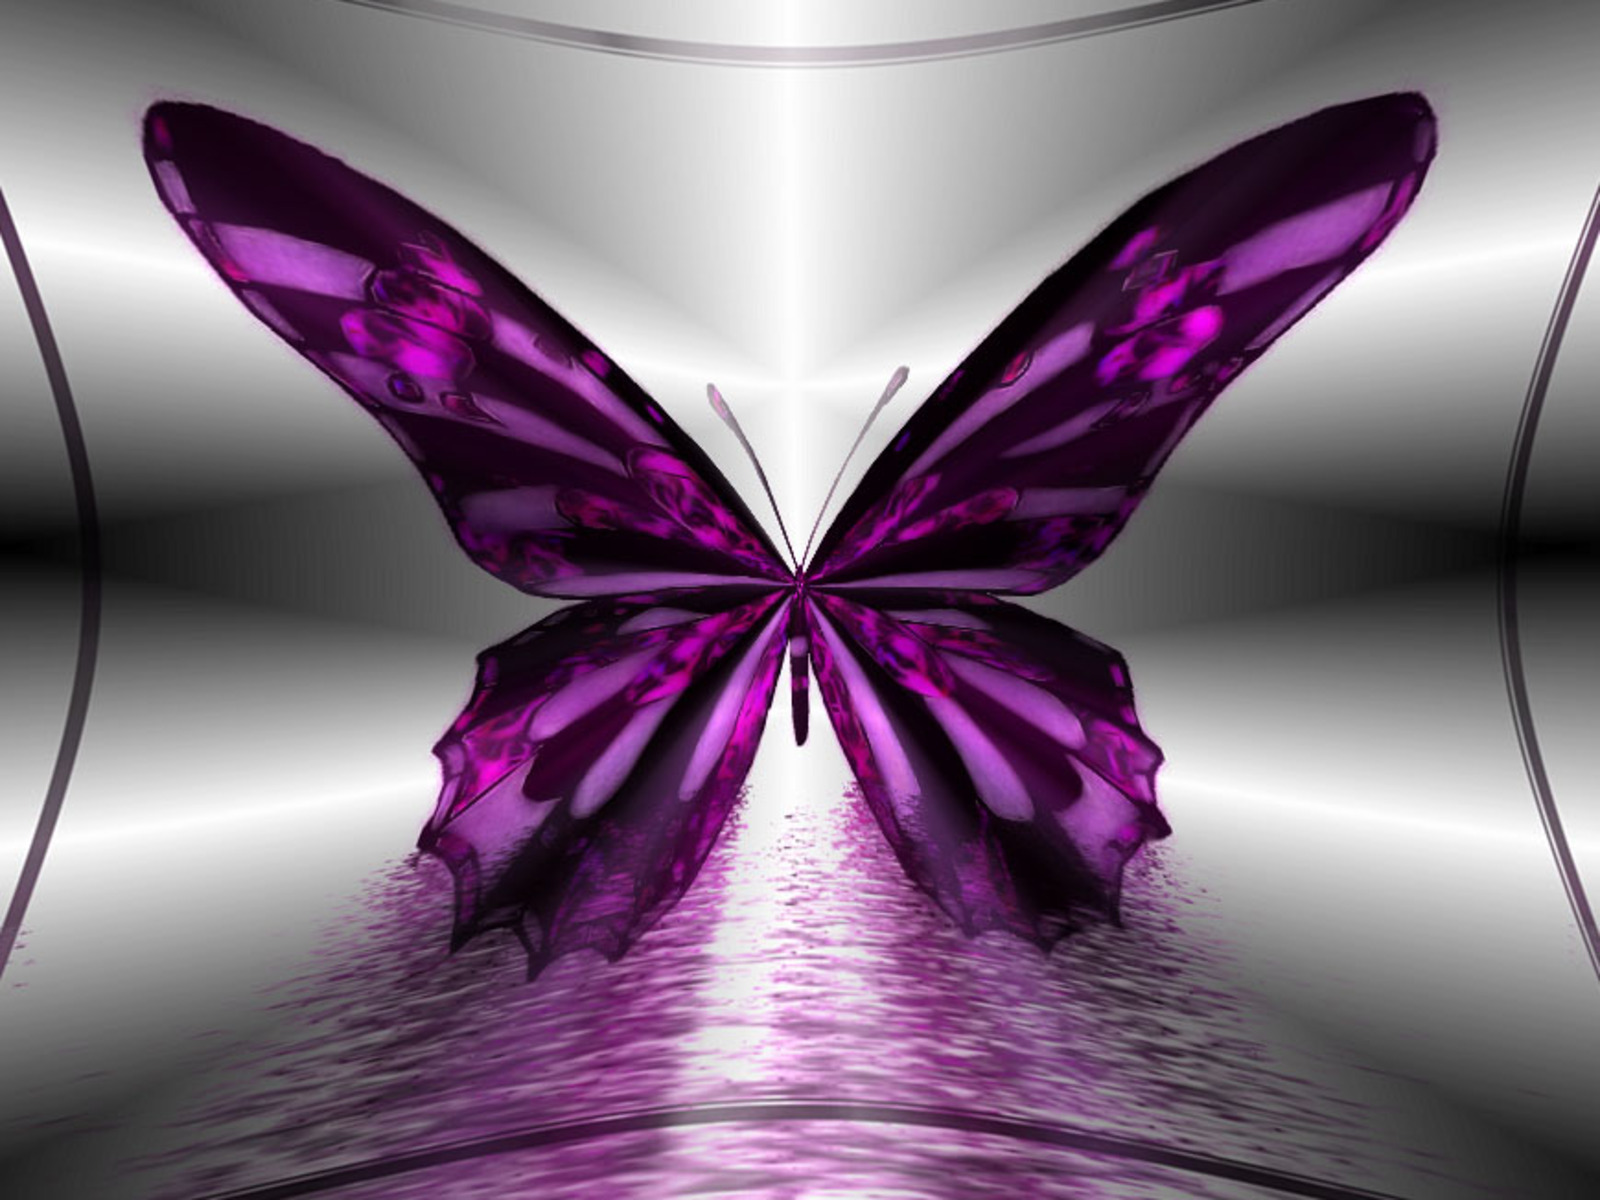 Wallpapers  HD Desktop Wallpapers Free Online: Butterfly Wallpapers